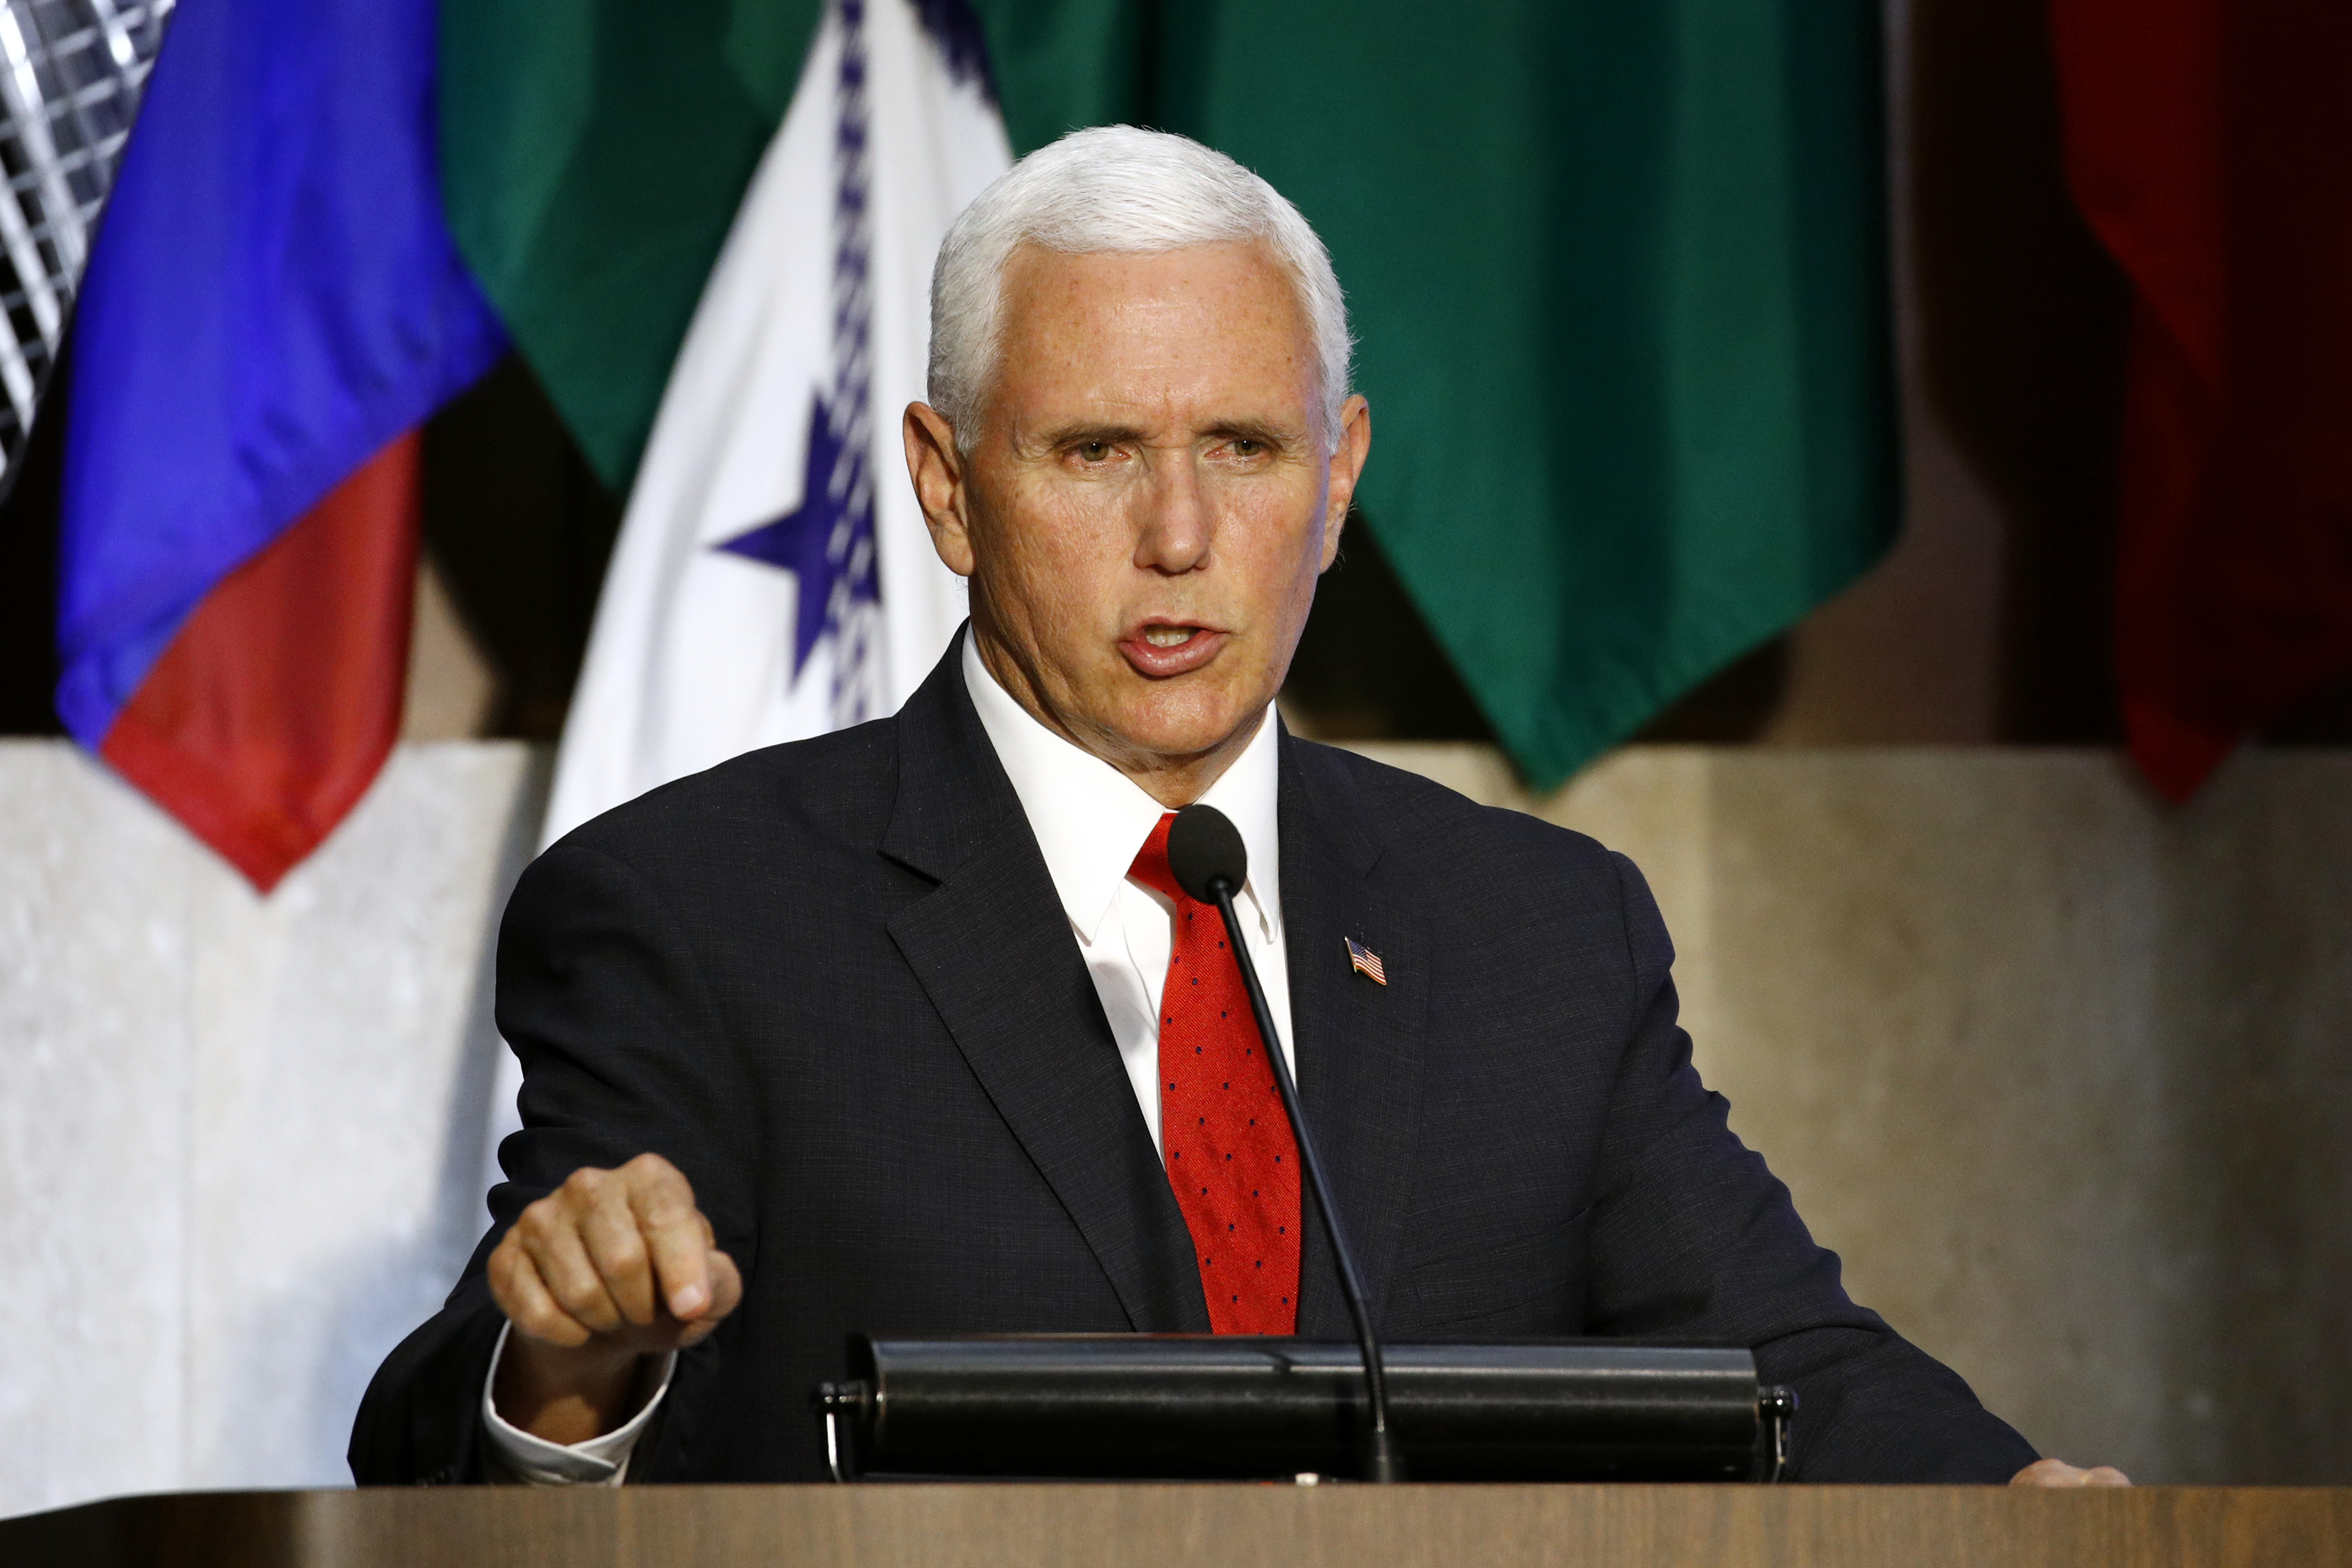 Vice President Mike Pence speaks at the 49th Washington Conference on the Americas, May 7, 2019, at the U.S. State Department in Washington.